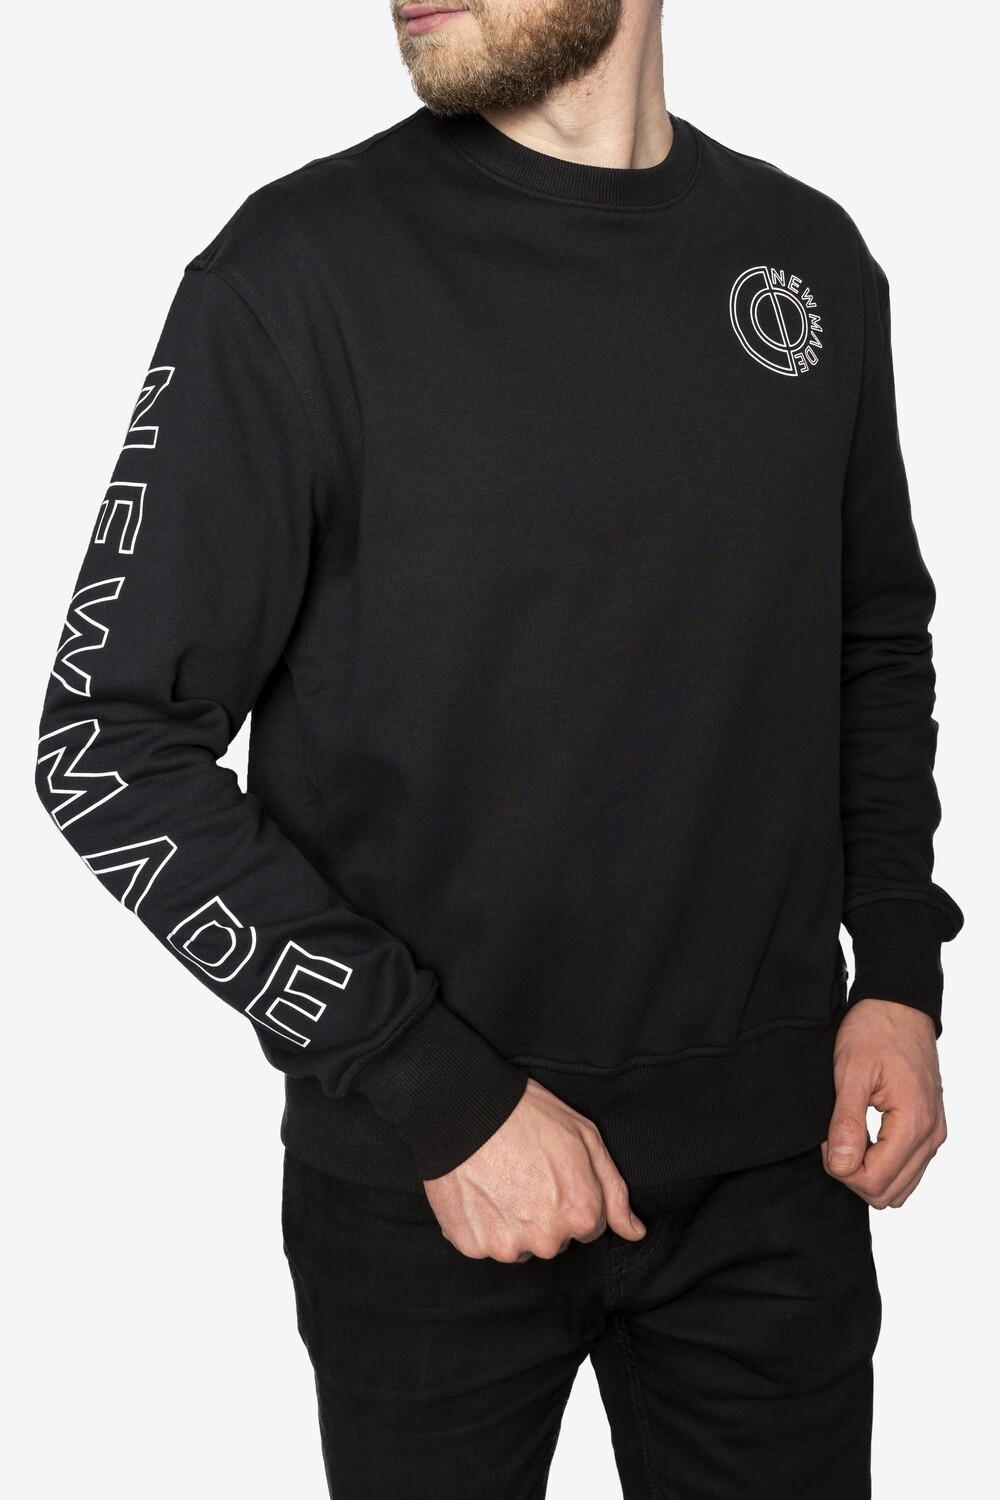 NEWMADE 2ND Sweater